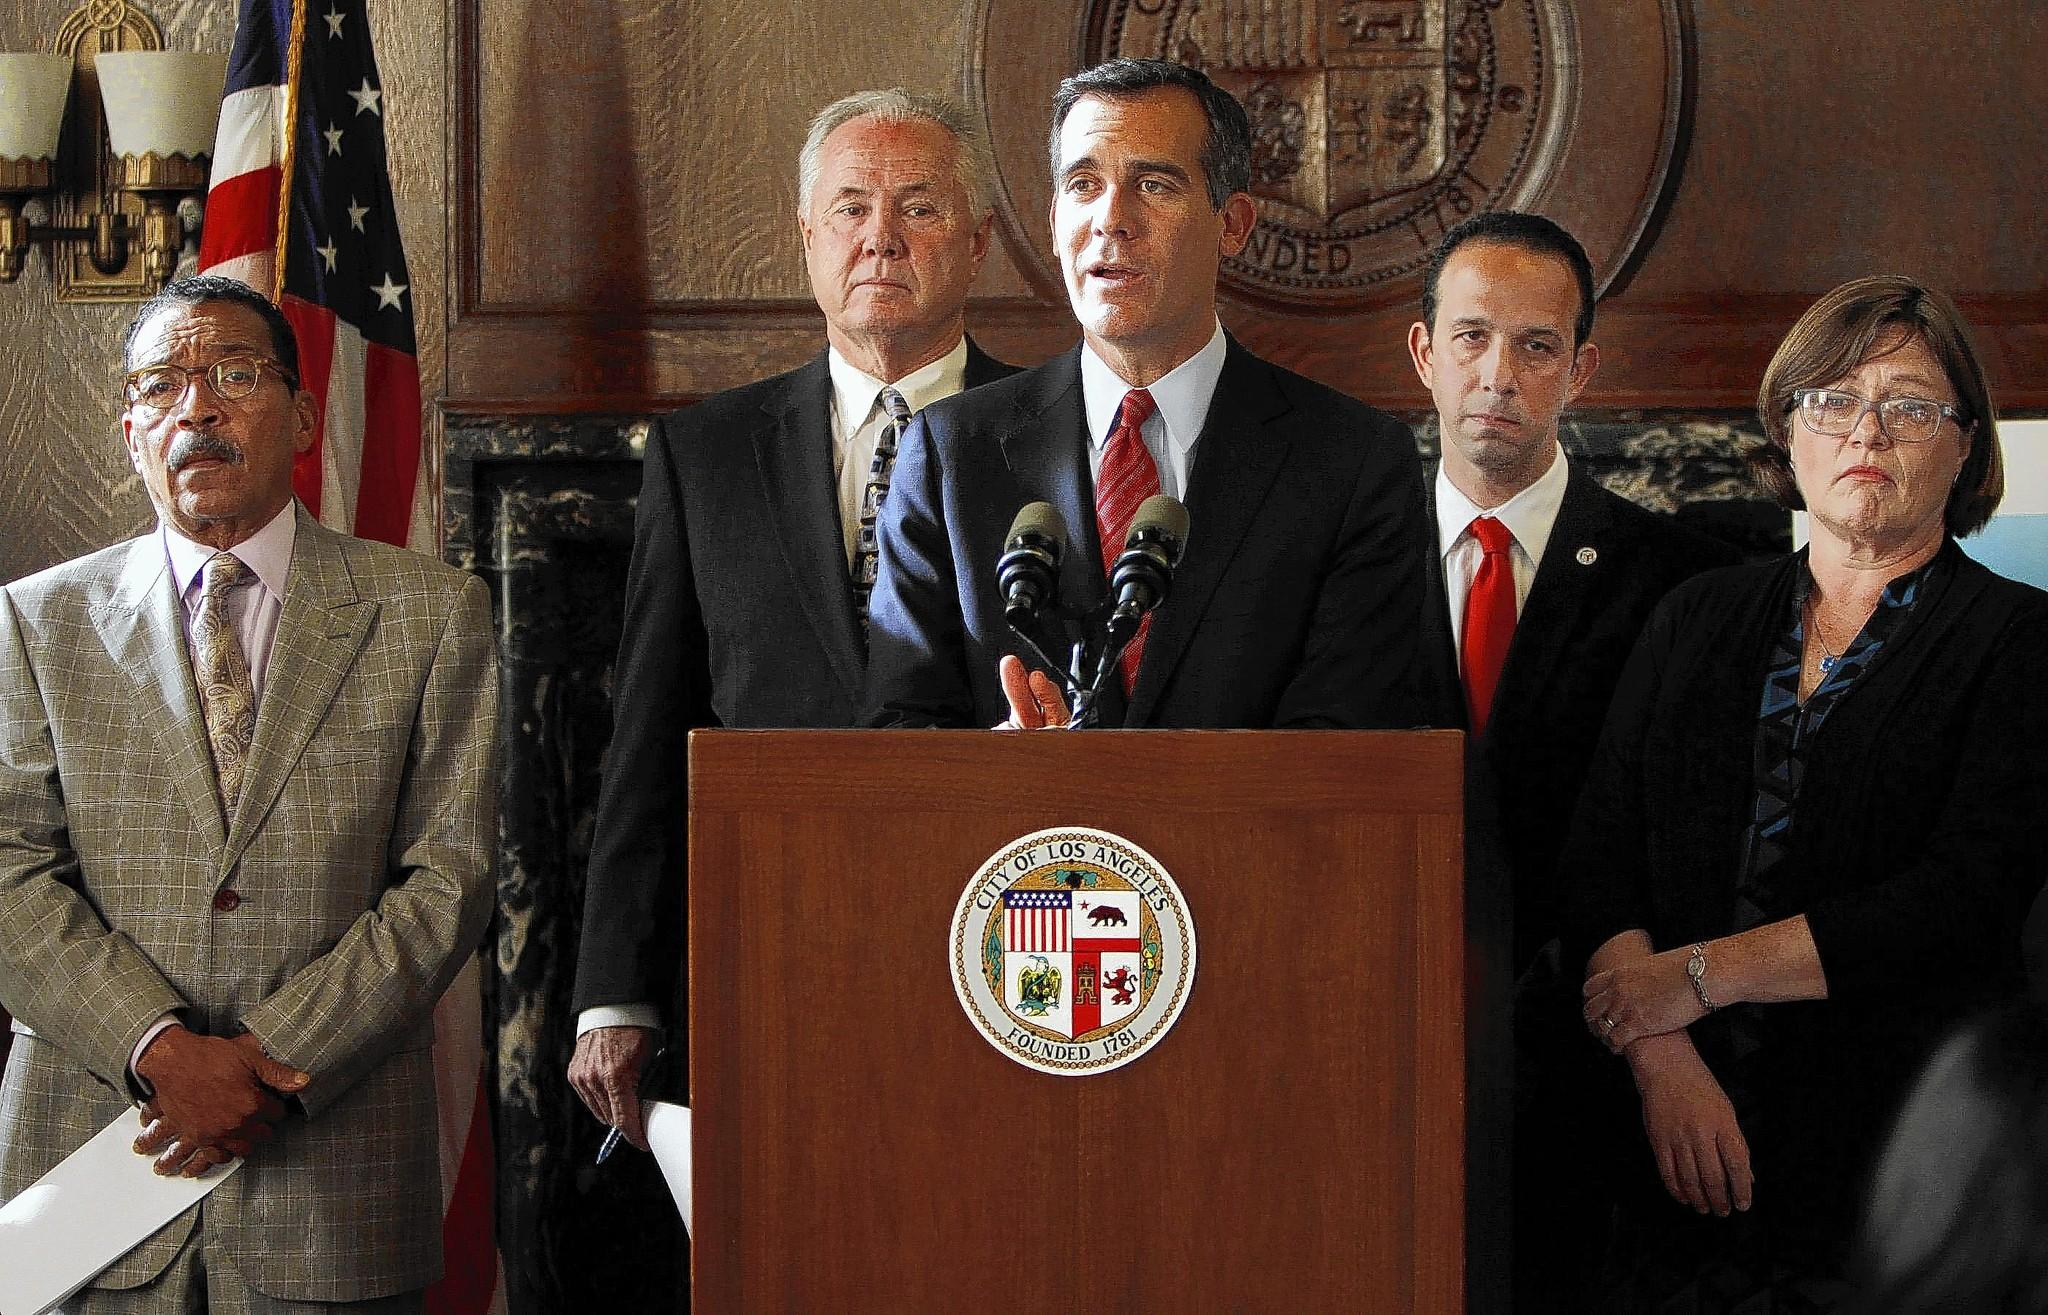 From left, L.A. City Council President Herb Wesson, Councilman Tom LaBonge, Mayor Eric Garcetti and Councilman Mitchell Englander join seismologist Lucy Jones during a news conference to announce a new city quake-preparedness effort.